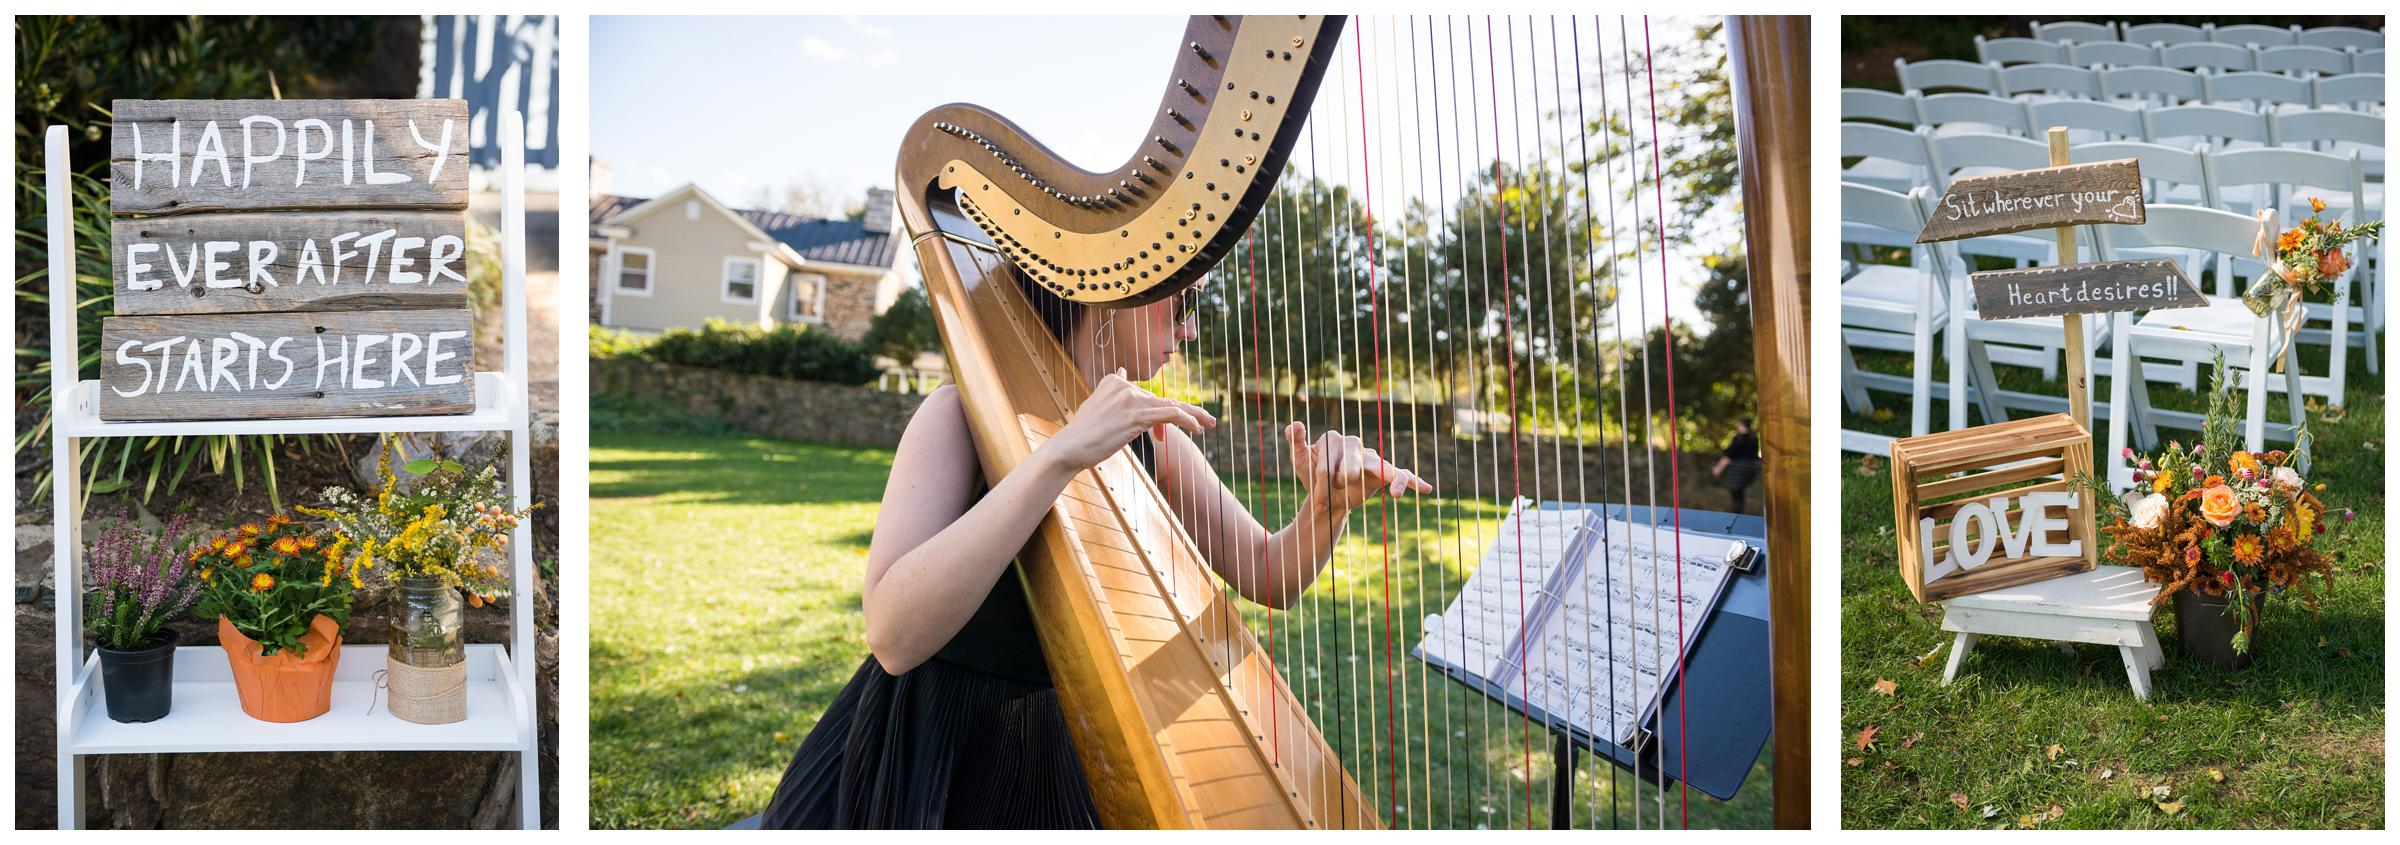 Harpist and rustic signs during wedding ceremony at Stoneleigh Golf Club.